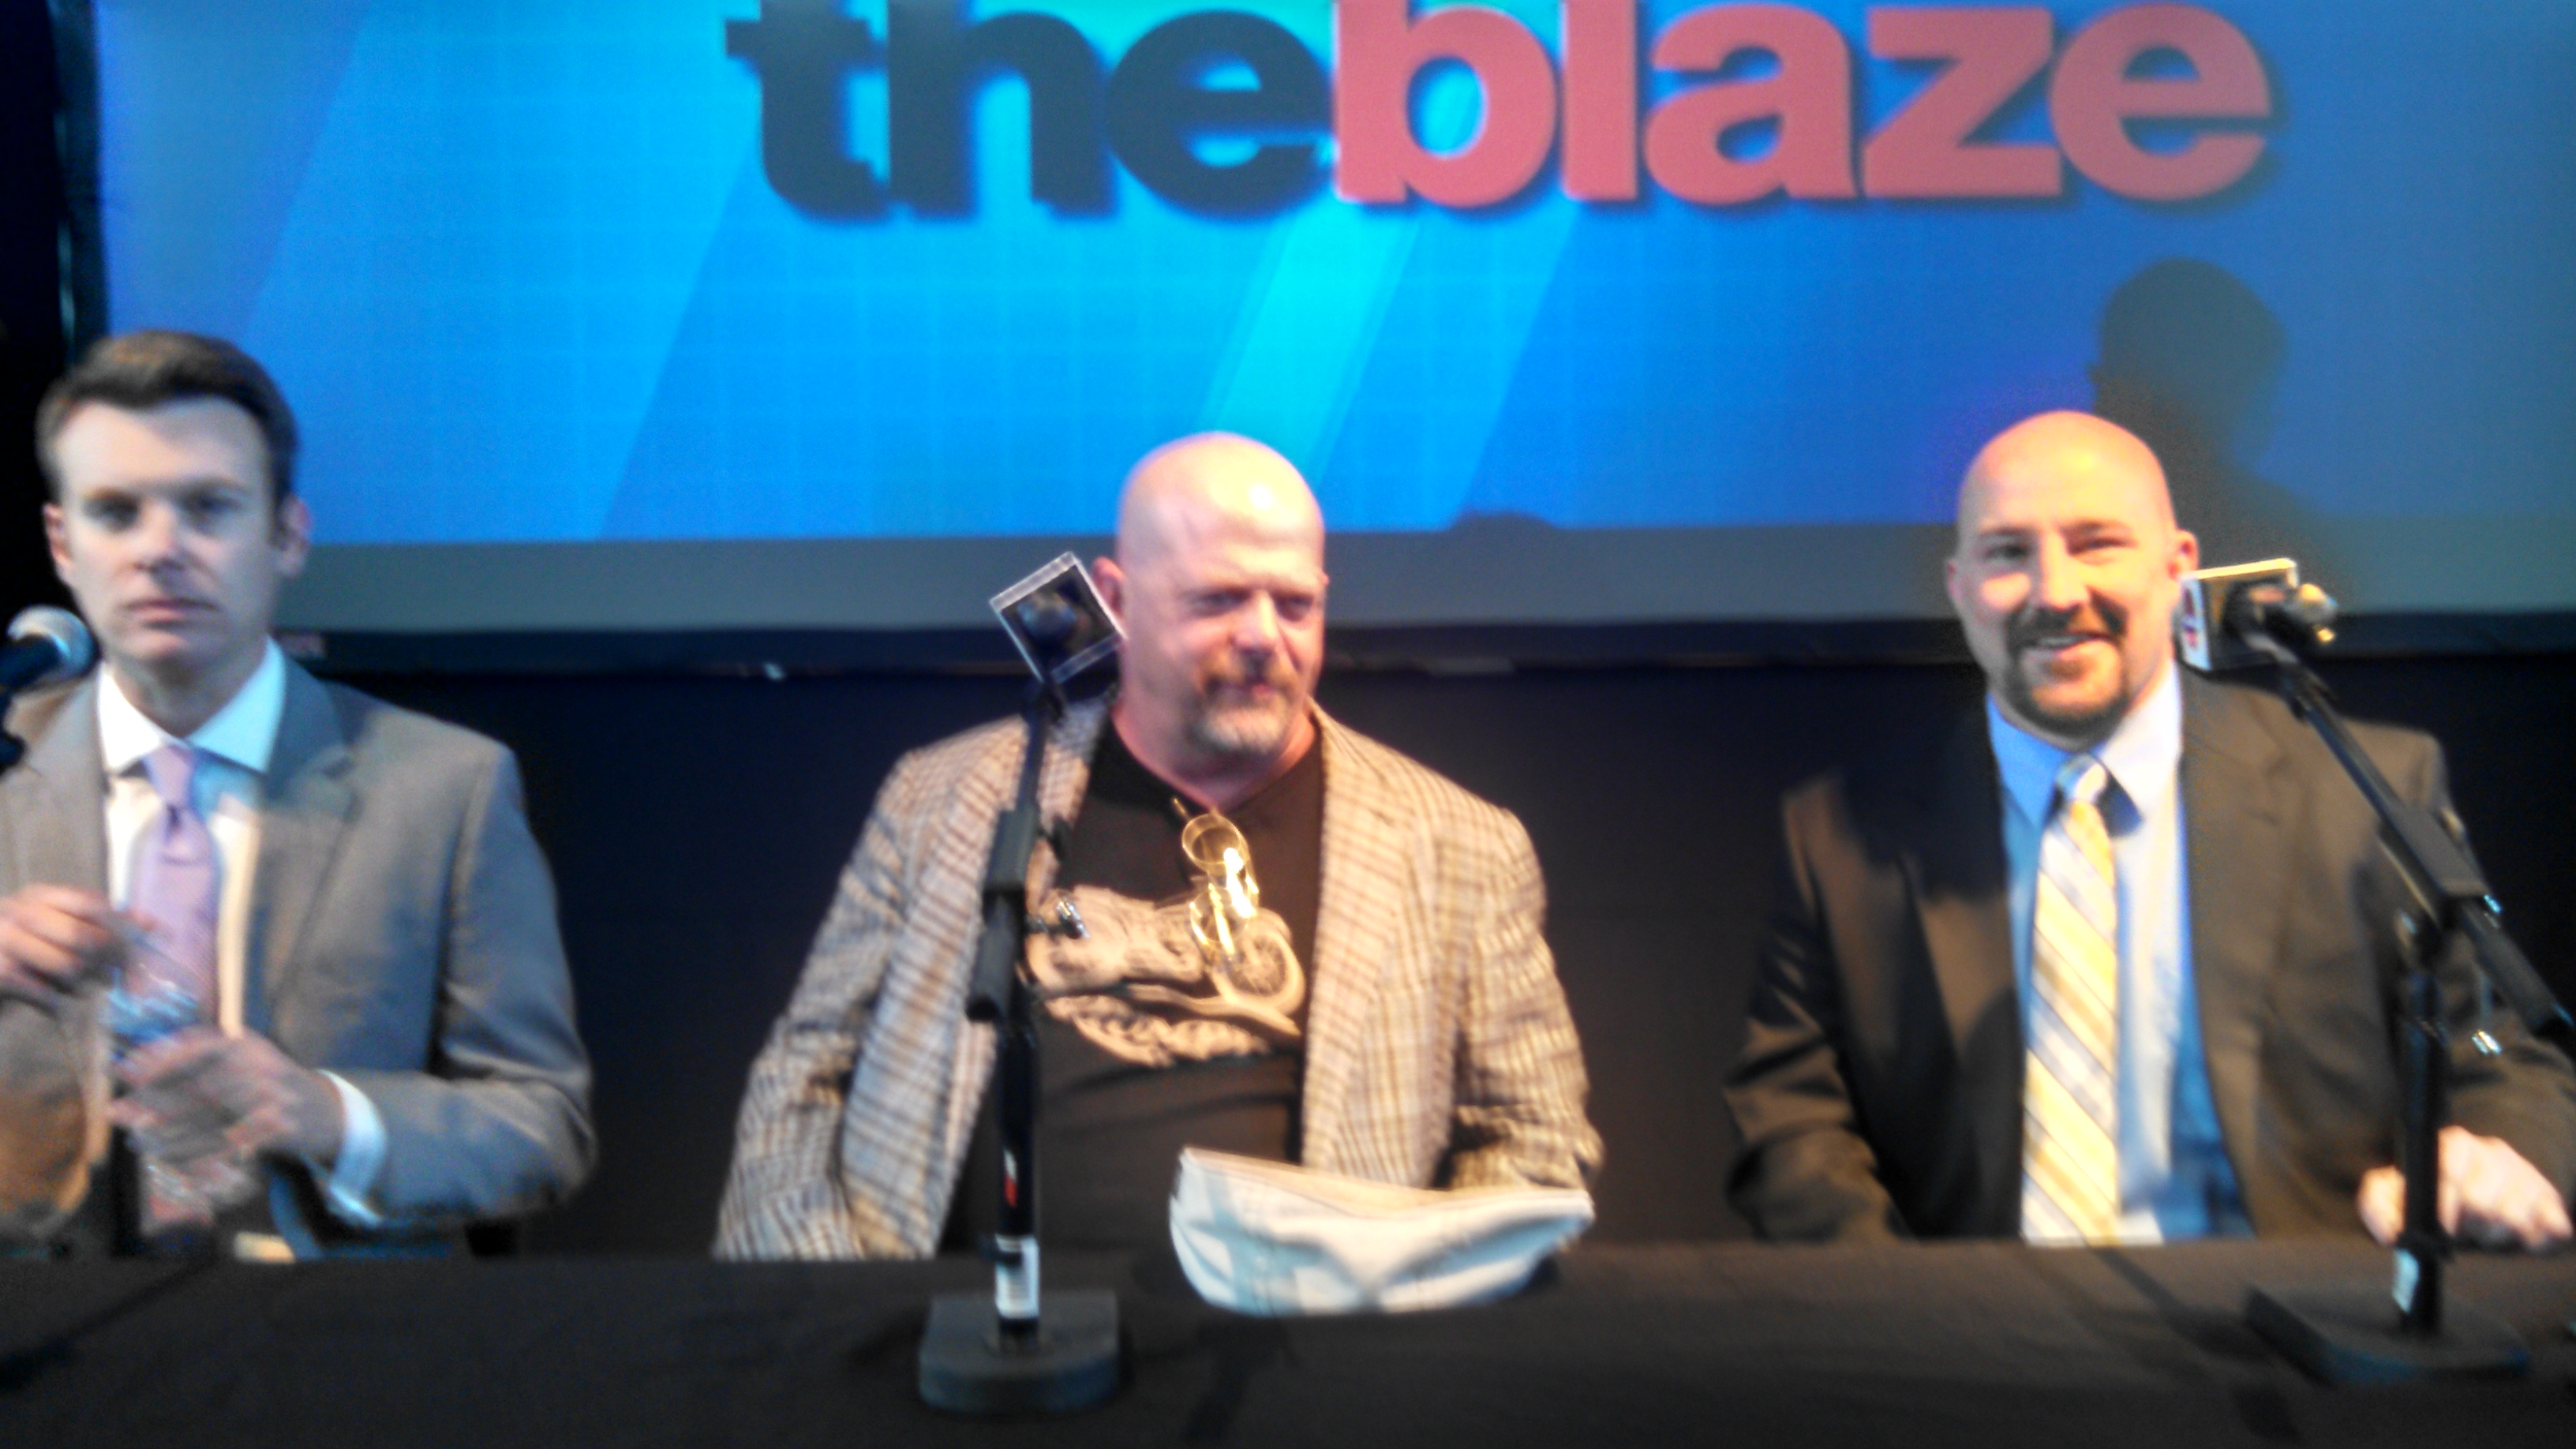 Pawn Stars' Rick Harrison on the post-debate discussion panel. Photo by Zach Foster